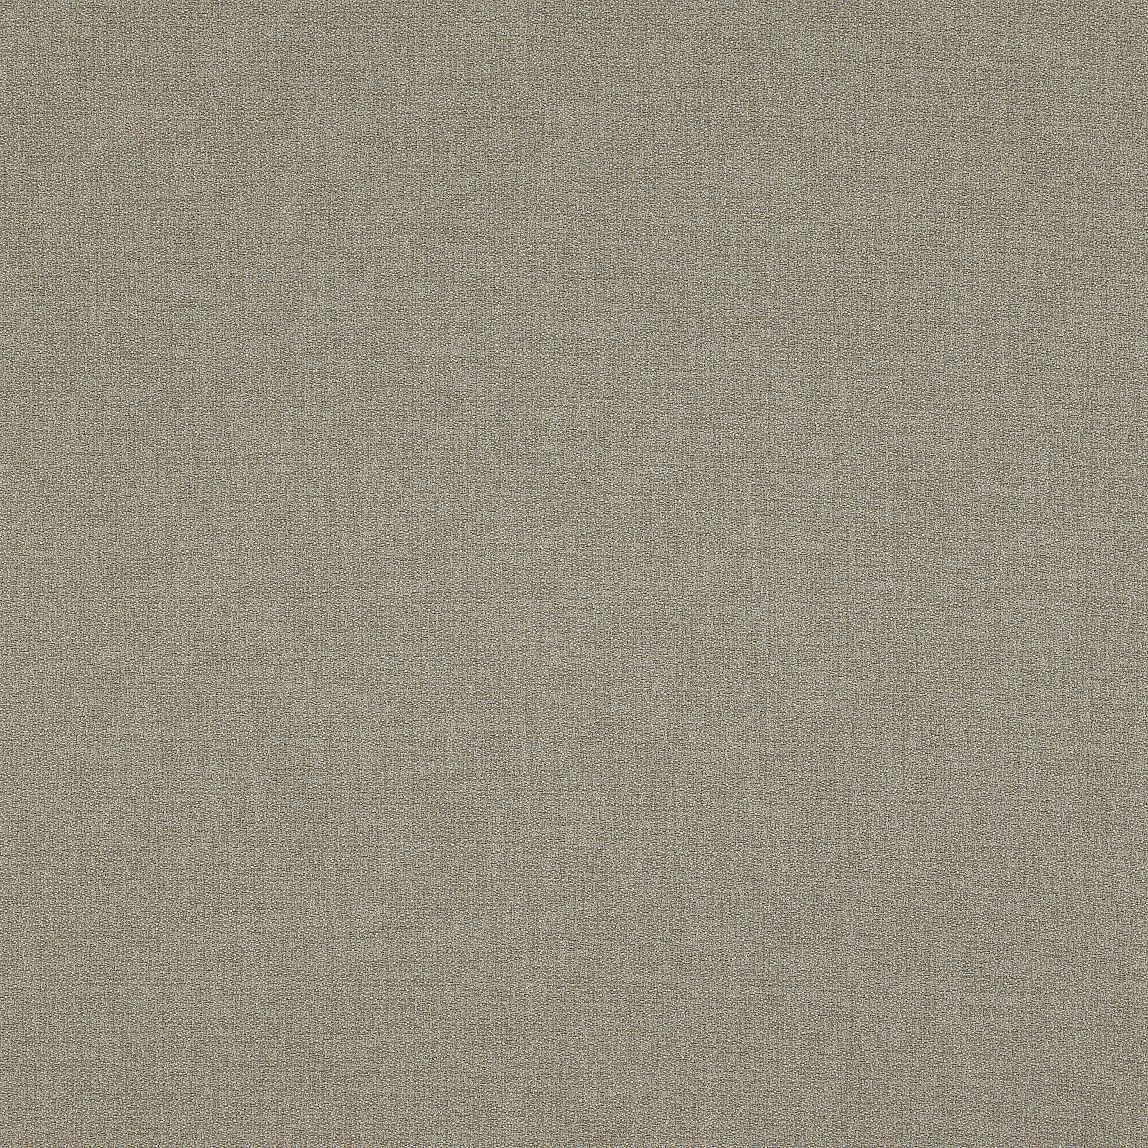 Manner Nuance Swatch